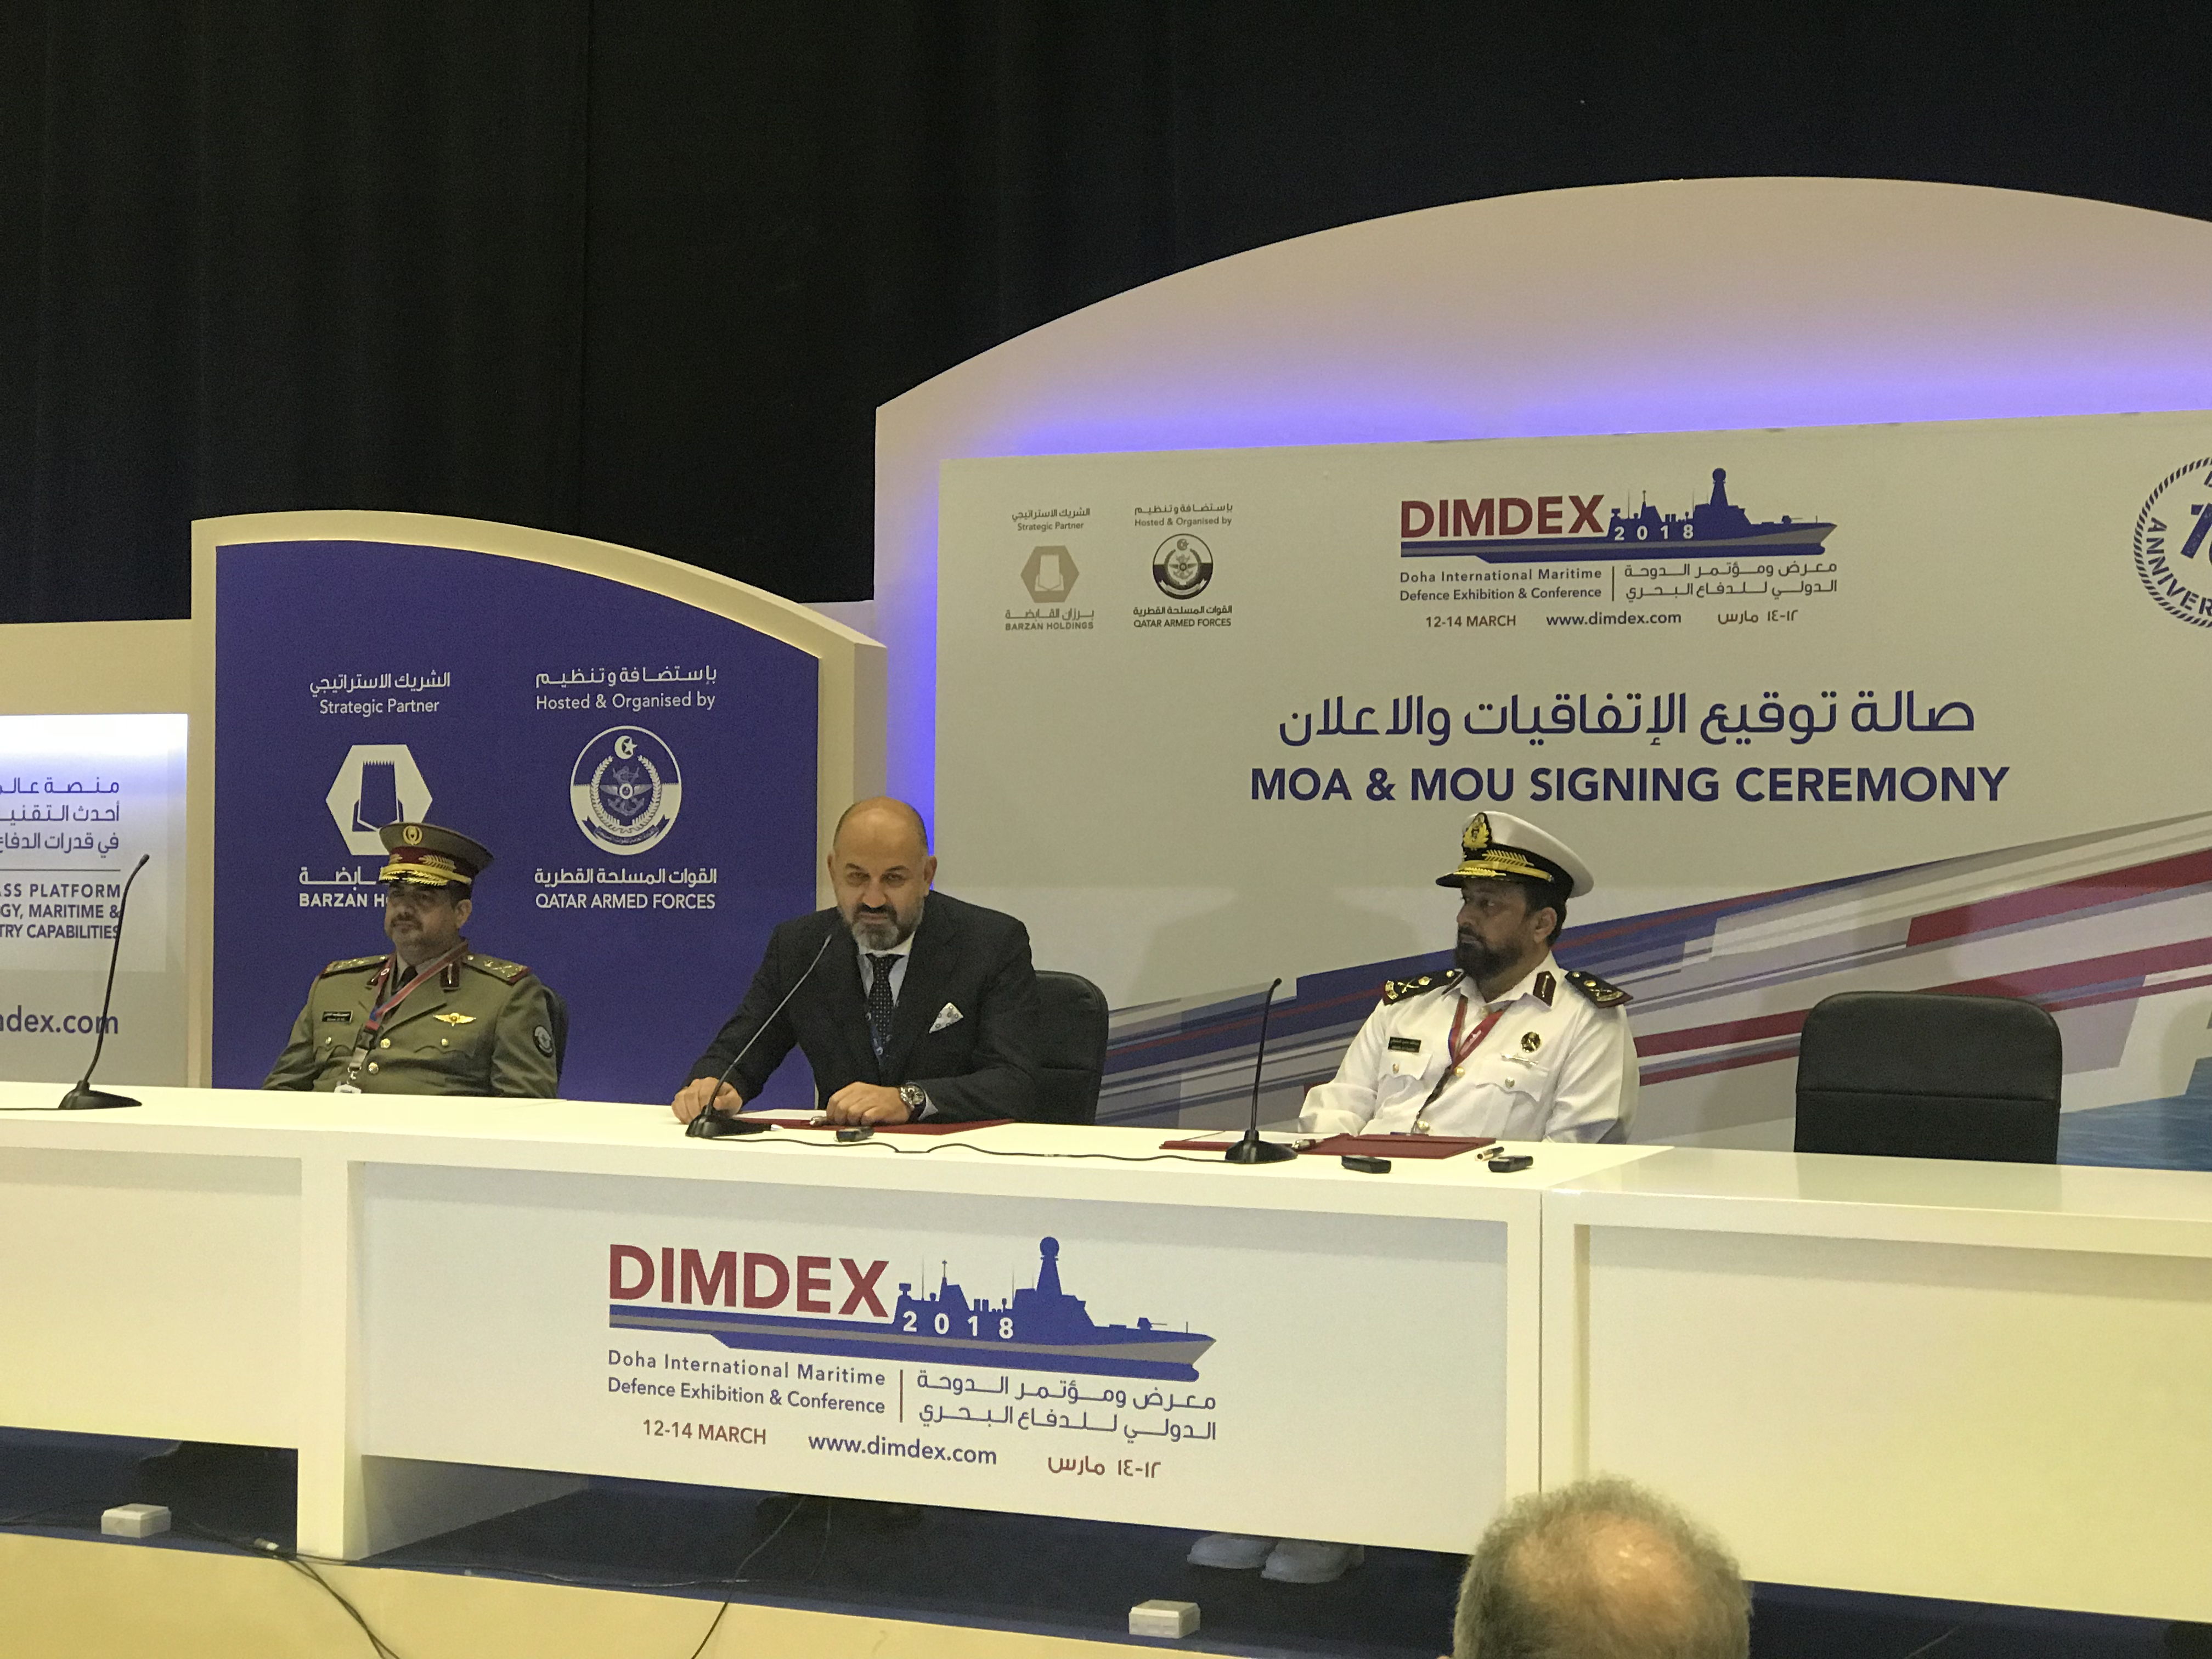 Anadolu Shipyard was Awarded a Contract by the Qatar Armed Forces to Build 2 pcs of Naval Cadet Training Ship (CTS) at DIMDEX 2018